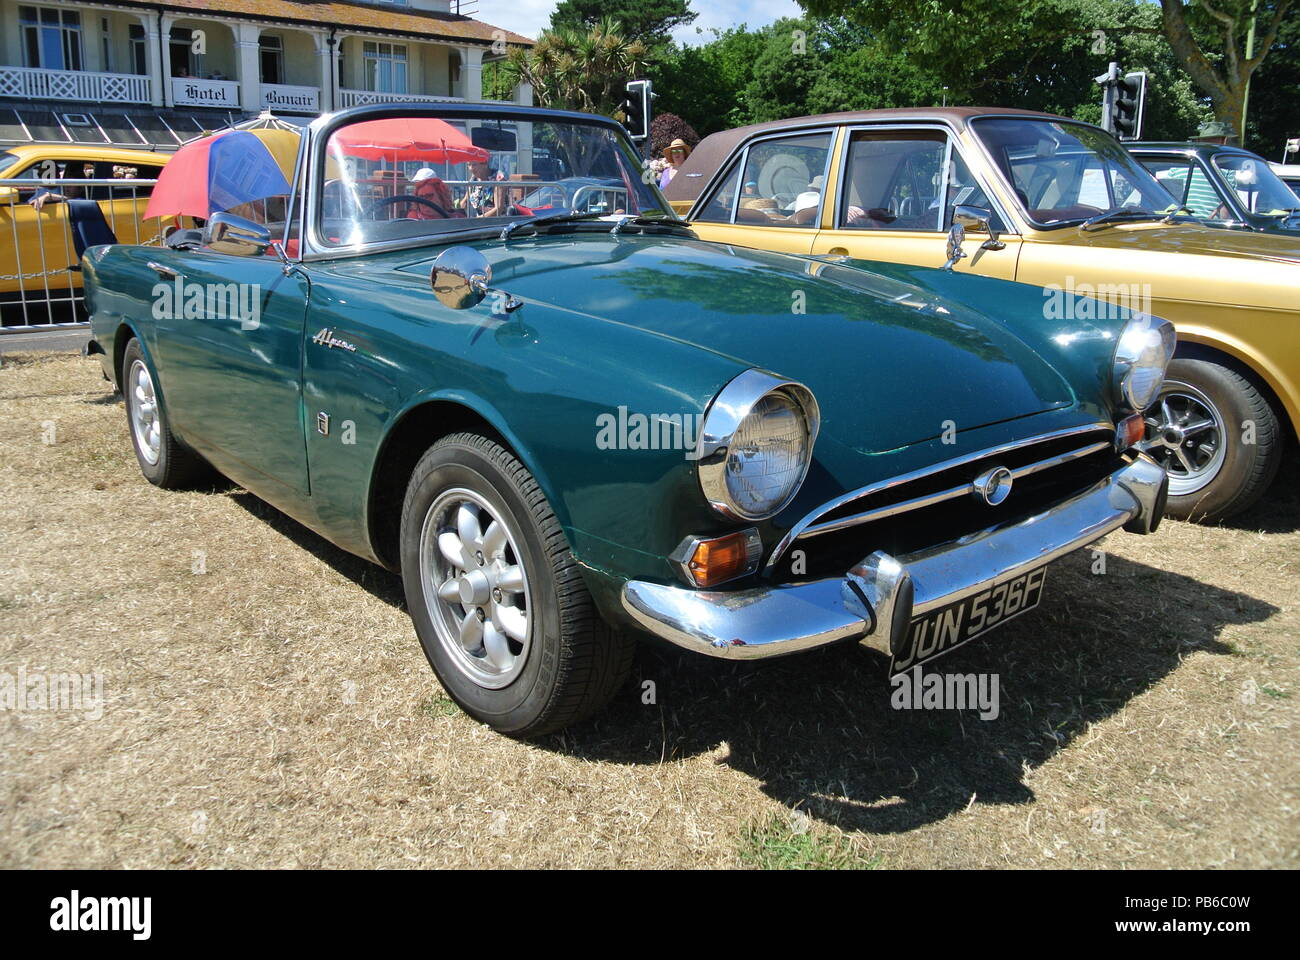 Sunbeam Alpine 1725 Parked On Display At The English Riviera Classic